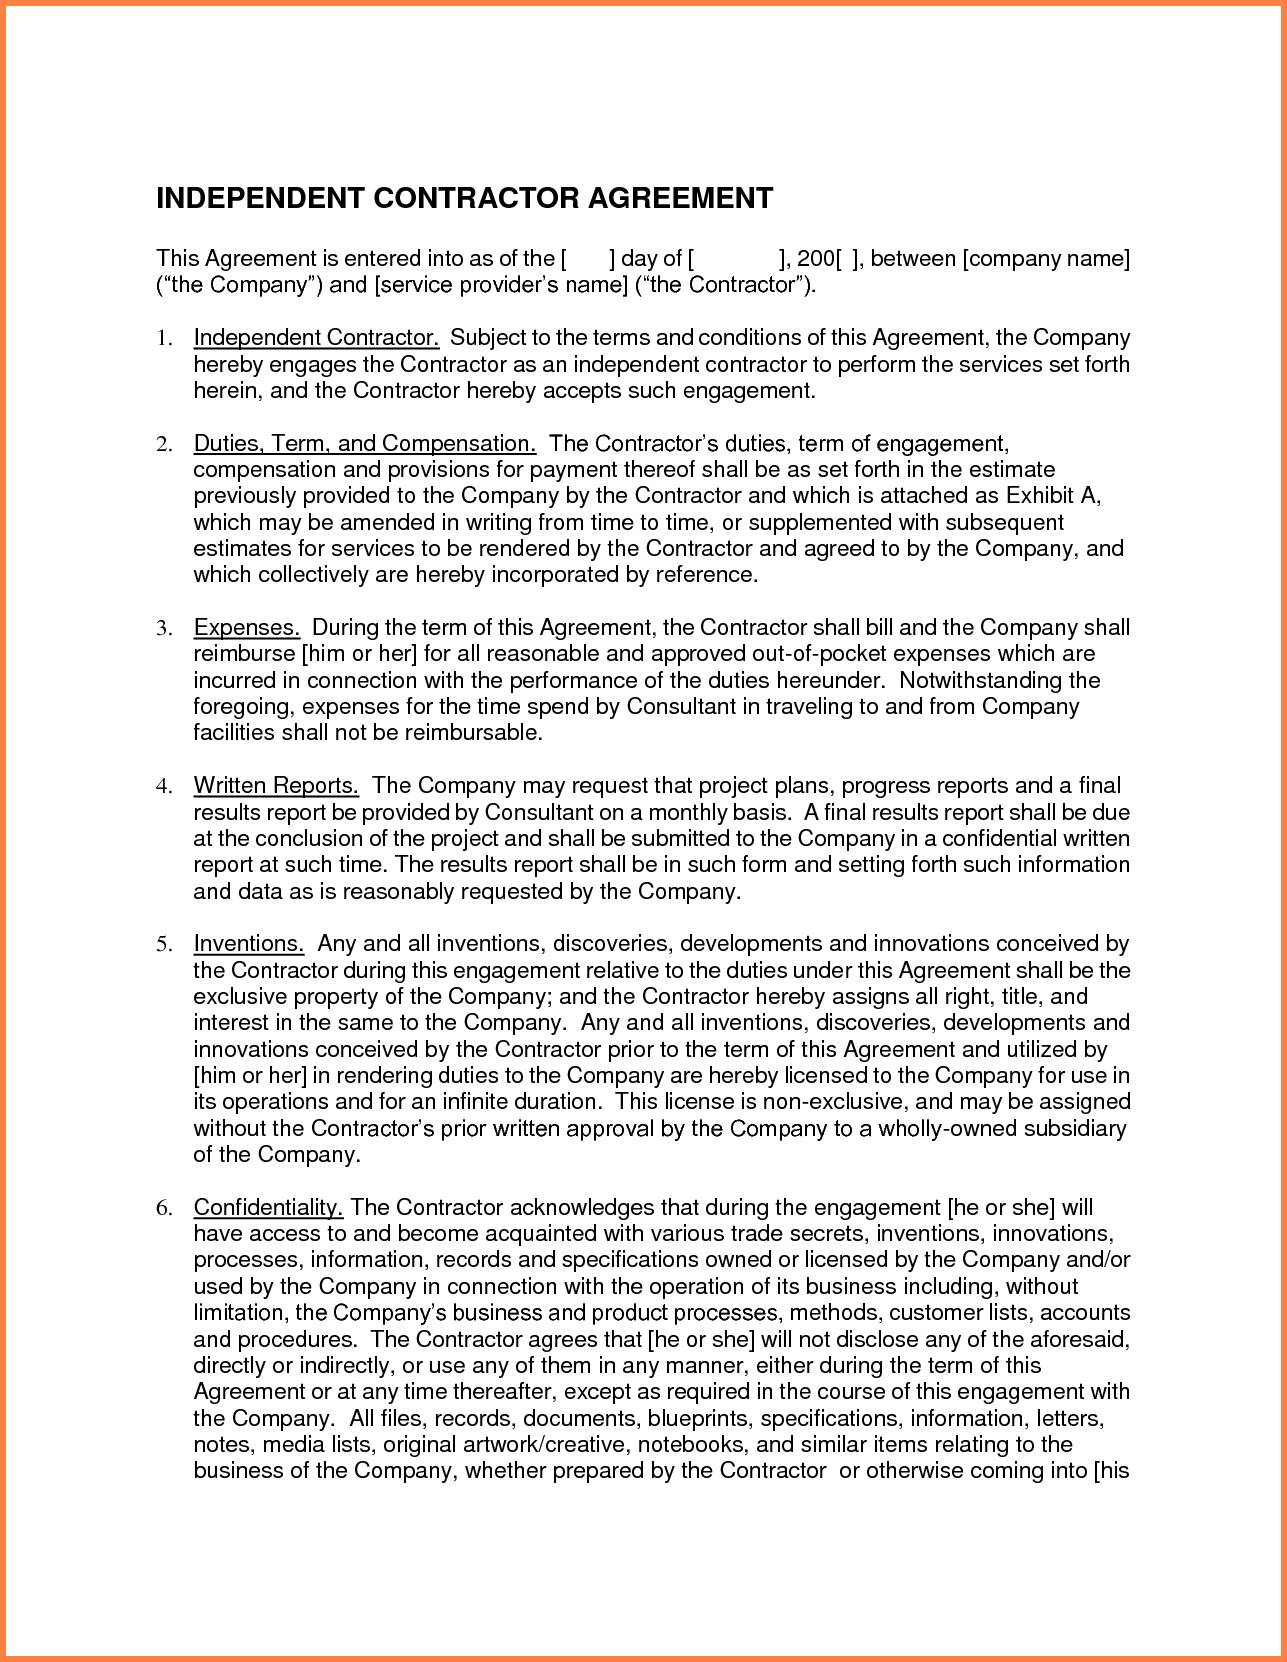 Independent Contractor Agreement Template New York